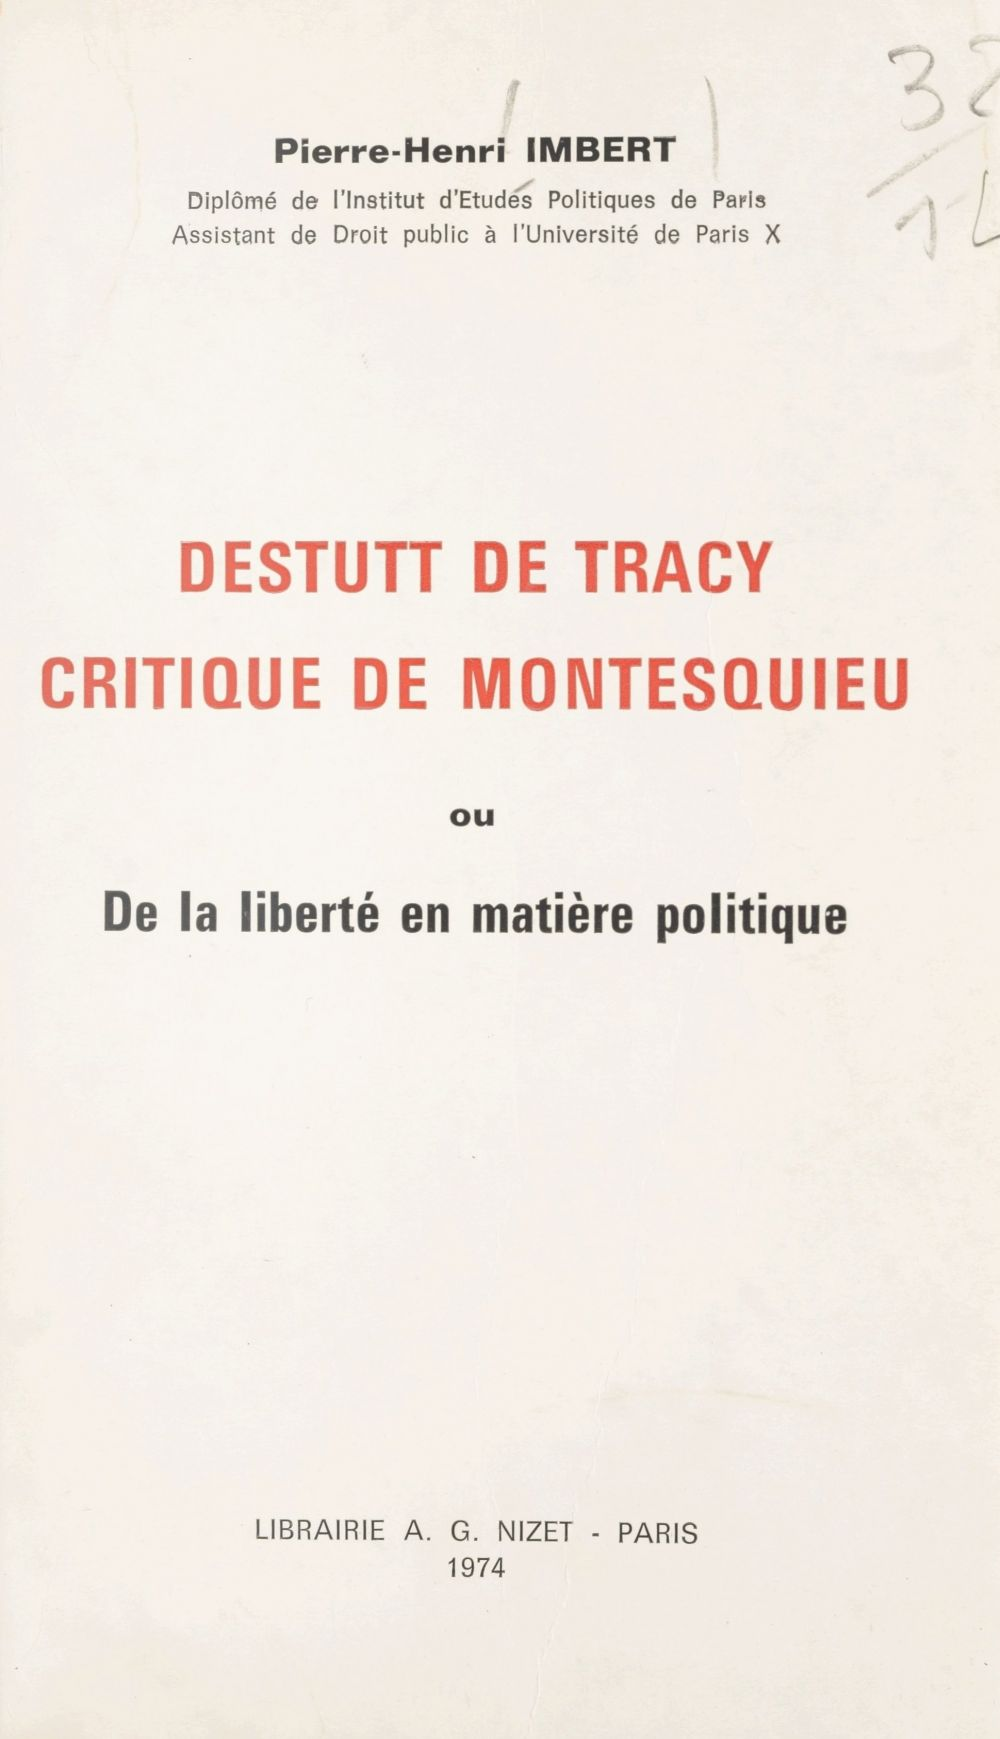 Destutt de Tracy, critique de Montesquieu